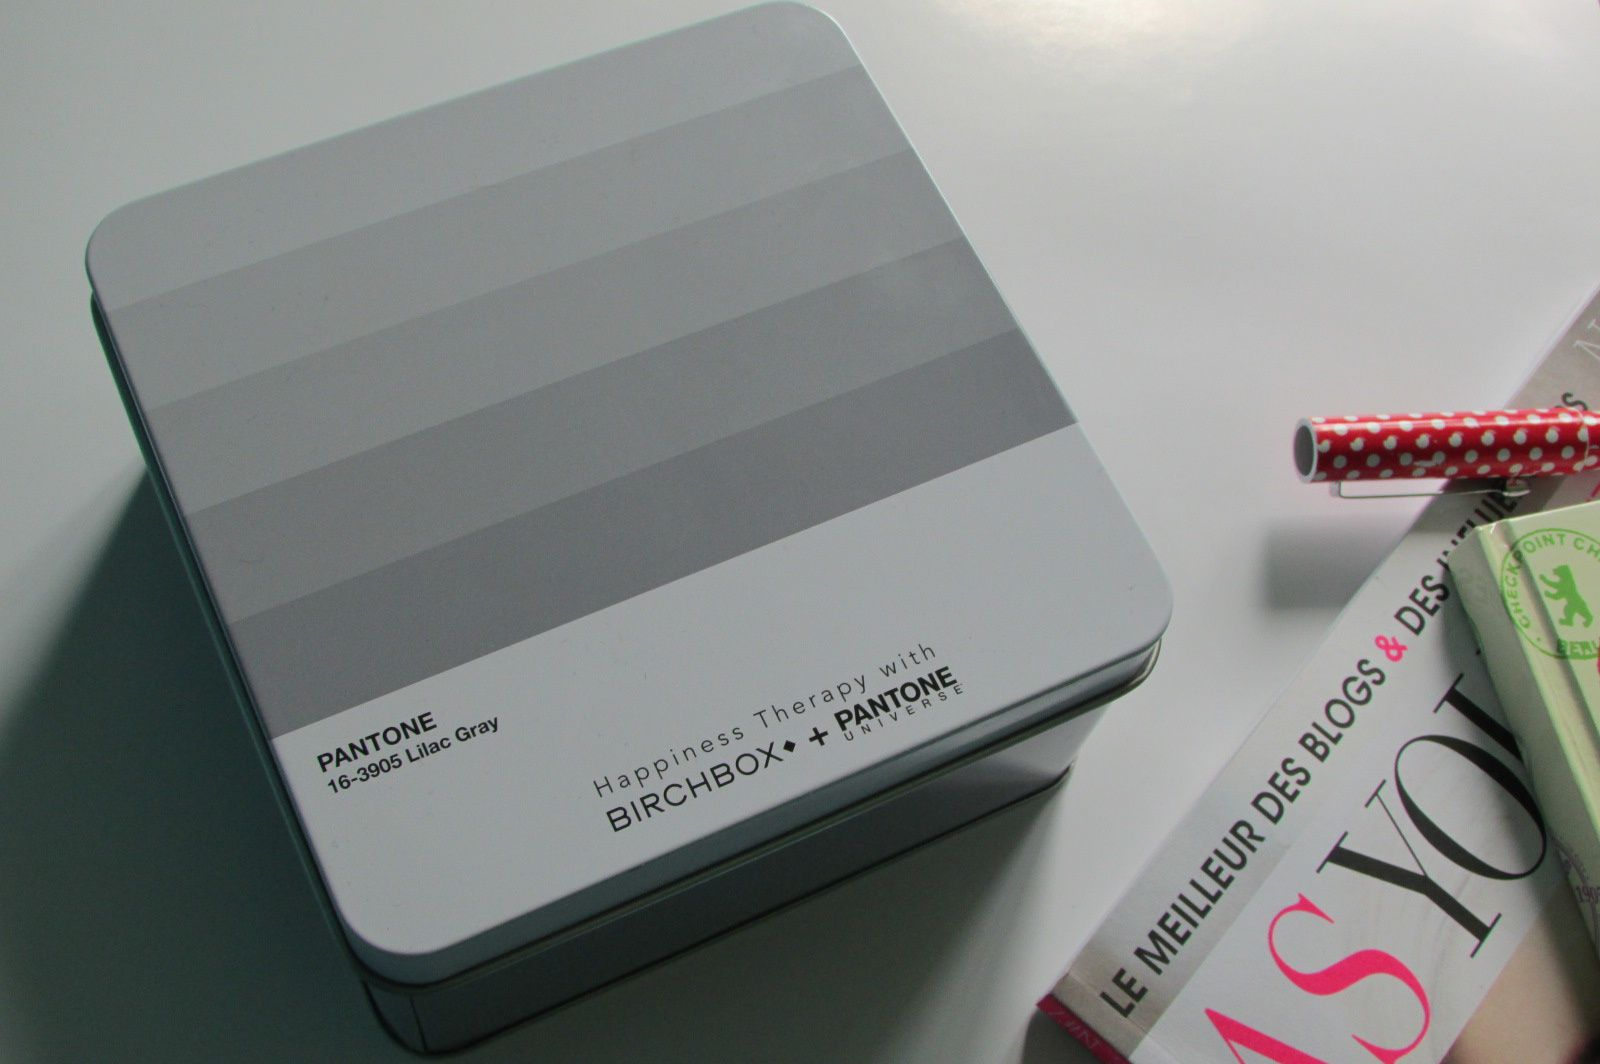 Happiness therapy with Birchbox x Pantone #Avril 2016#